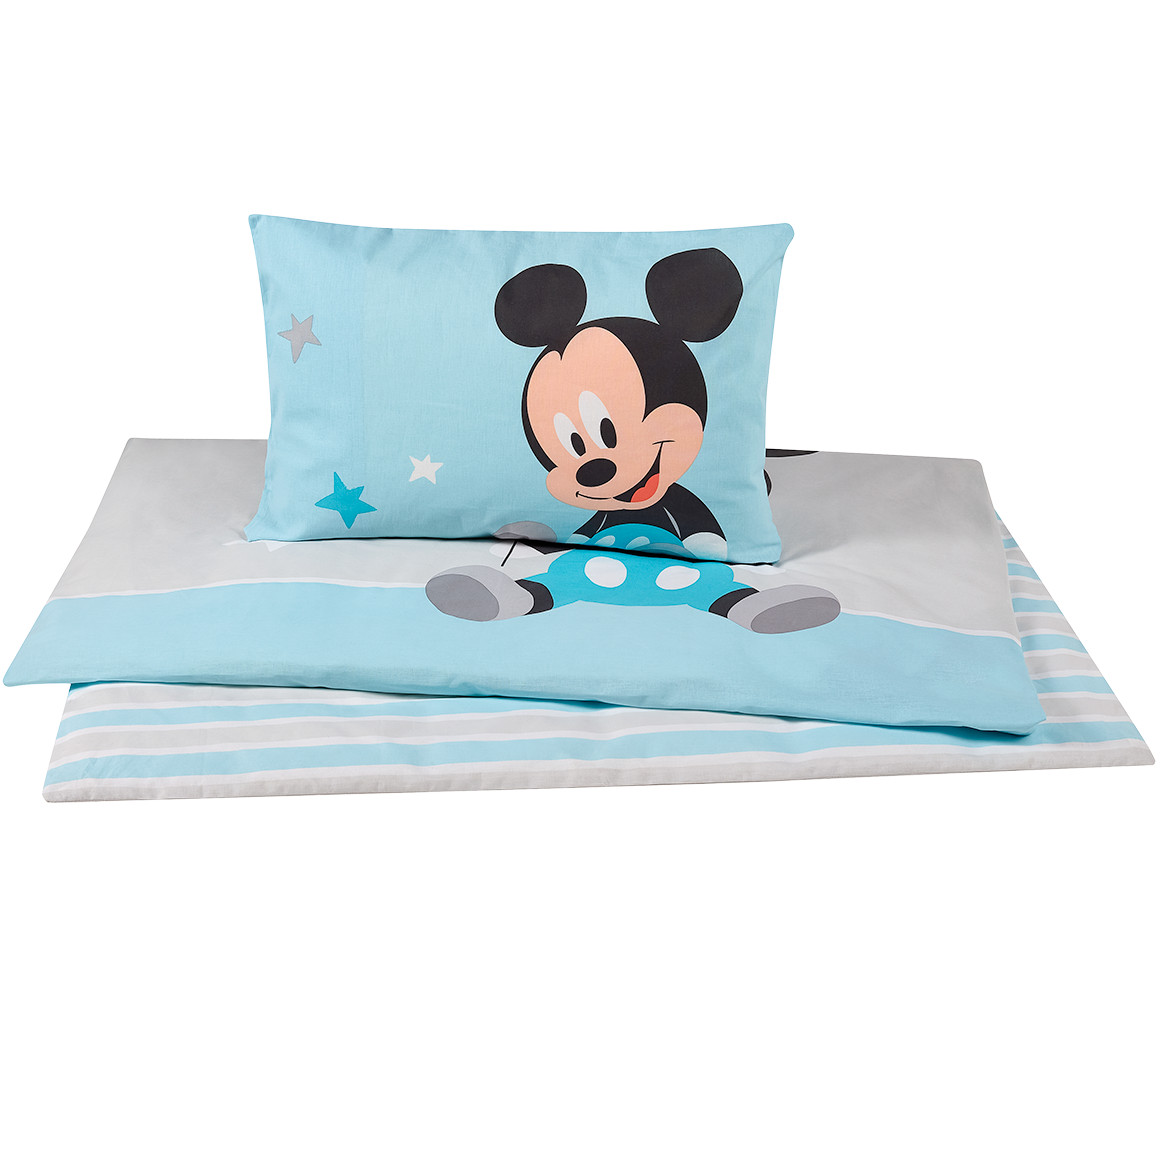 Home Furniture Diy Bedding Sets Duvet Covers Disney Micky Maus 100x135cm Bettgarnitur Bettbezug Baby Bettwäsche Bortexgroup Com